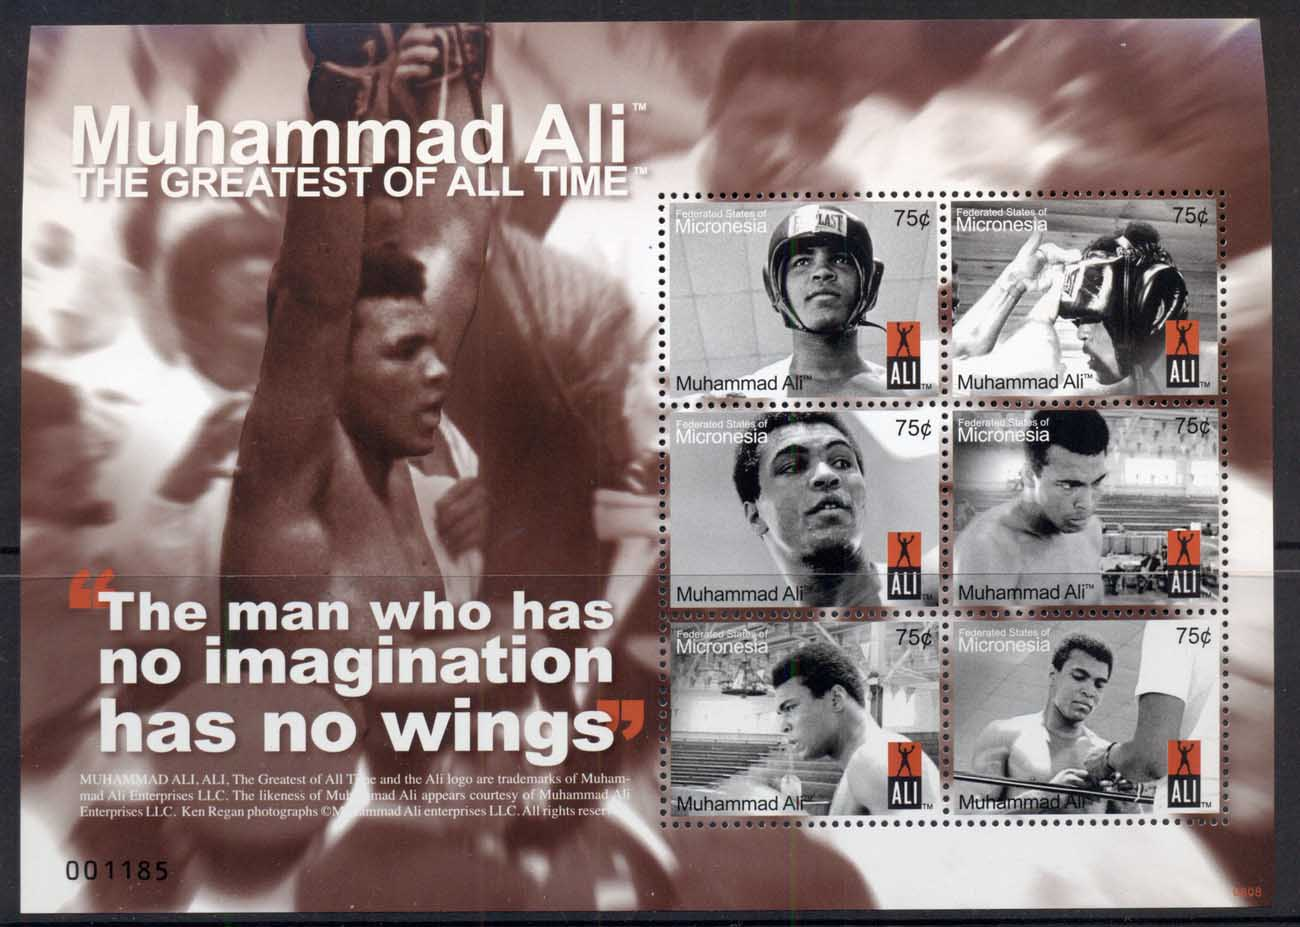 Micronesia 2008 Muhammad Ali, The Greatest of All Time MS MUH